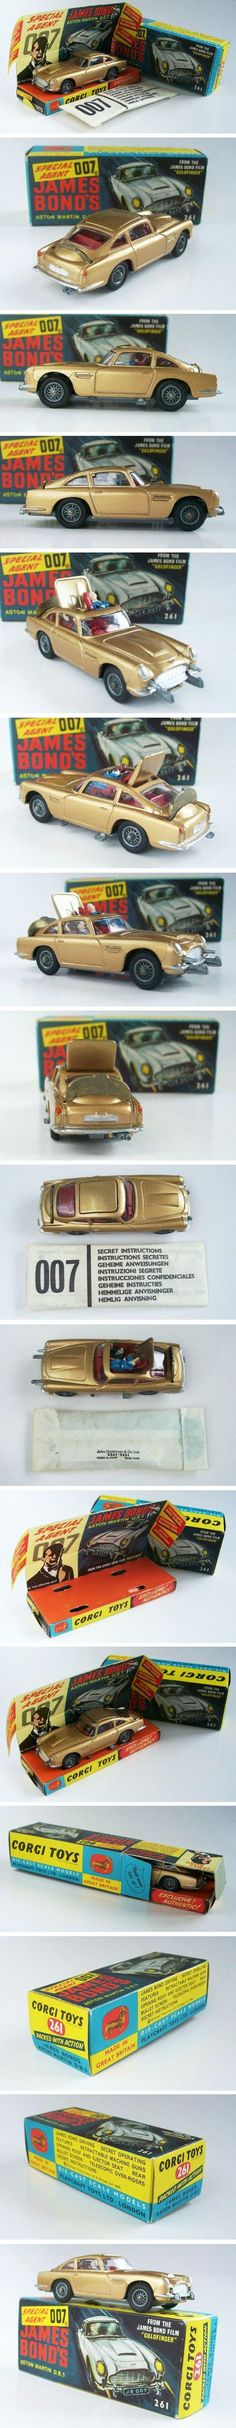 Corgi James Bond Aston Martin DB5 C270